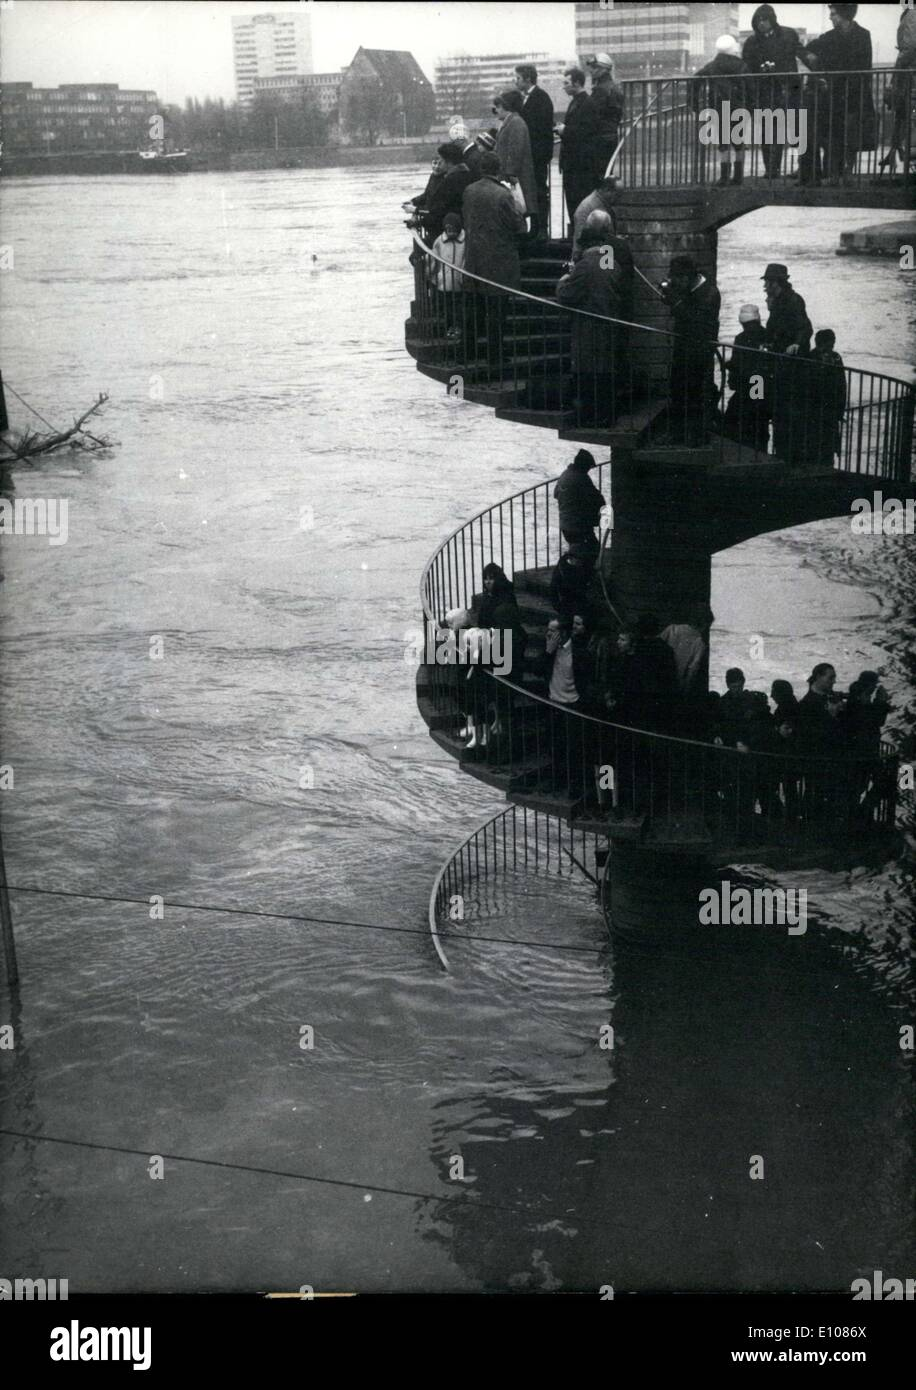 Feb. 26, 1970 - Pictured here are some Koeln resident as they look down at the high water of the Rhein river on the Deutzer Bruecke. The river water level had raised drastically in many parts of Germany and the water had taken over many streets(pictured here is Rheinuferstrasse).Over 1,000 policemen, Armed Forces soldiers, firemen, and civil service members were fighting the flooding. - Stock Image